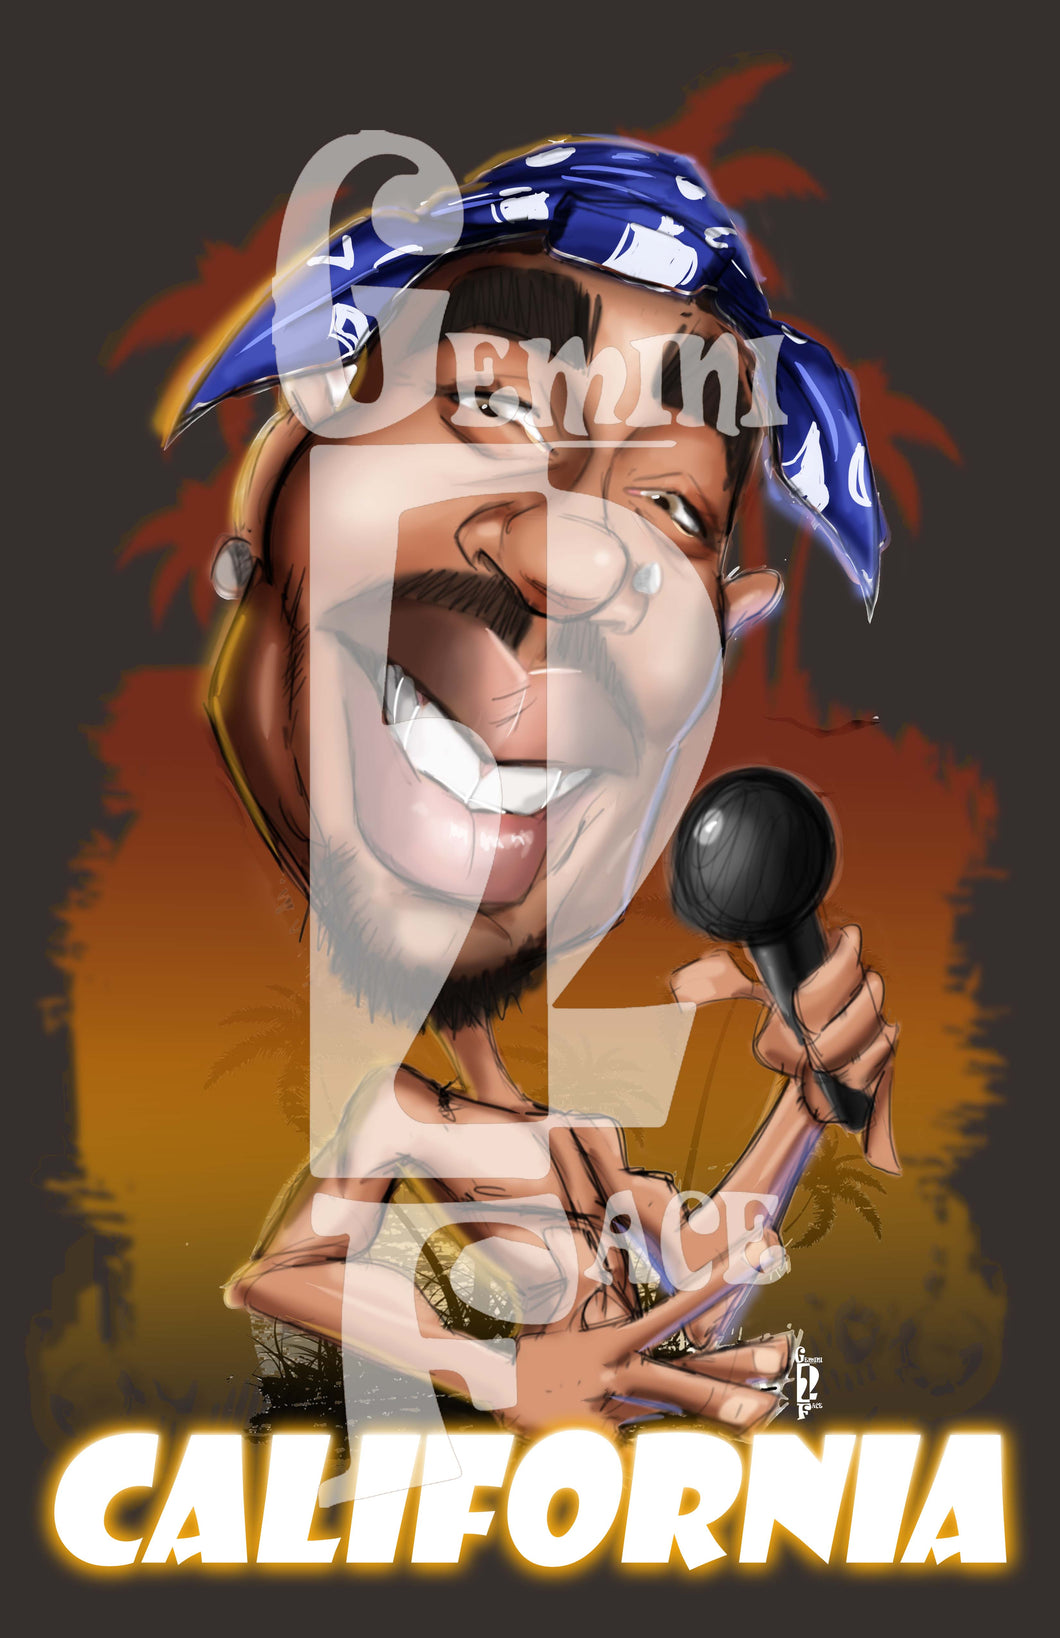 Tupac PNG (version 1) PNG File Gemini2face Art E-Store